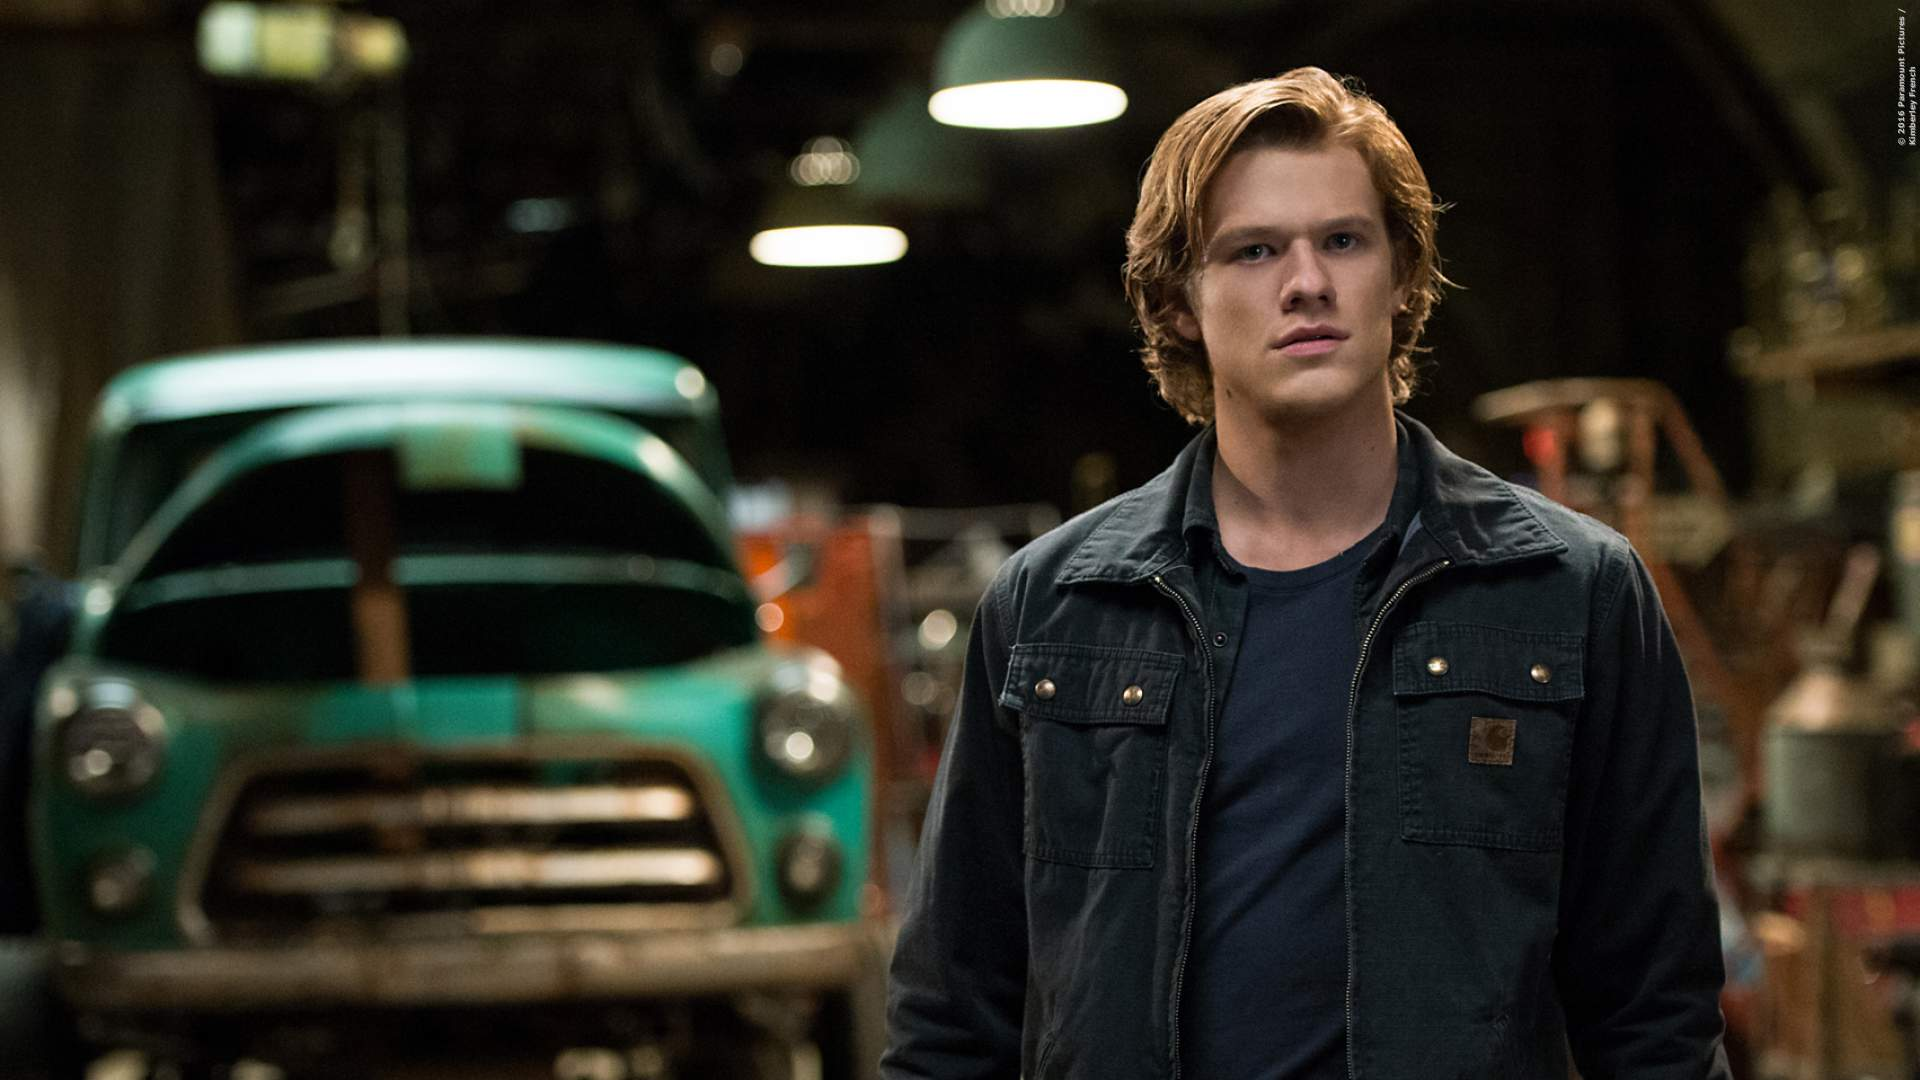 Monster Trucks Trailer - Bild 1 von 8